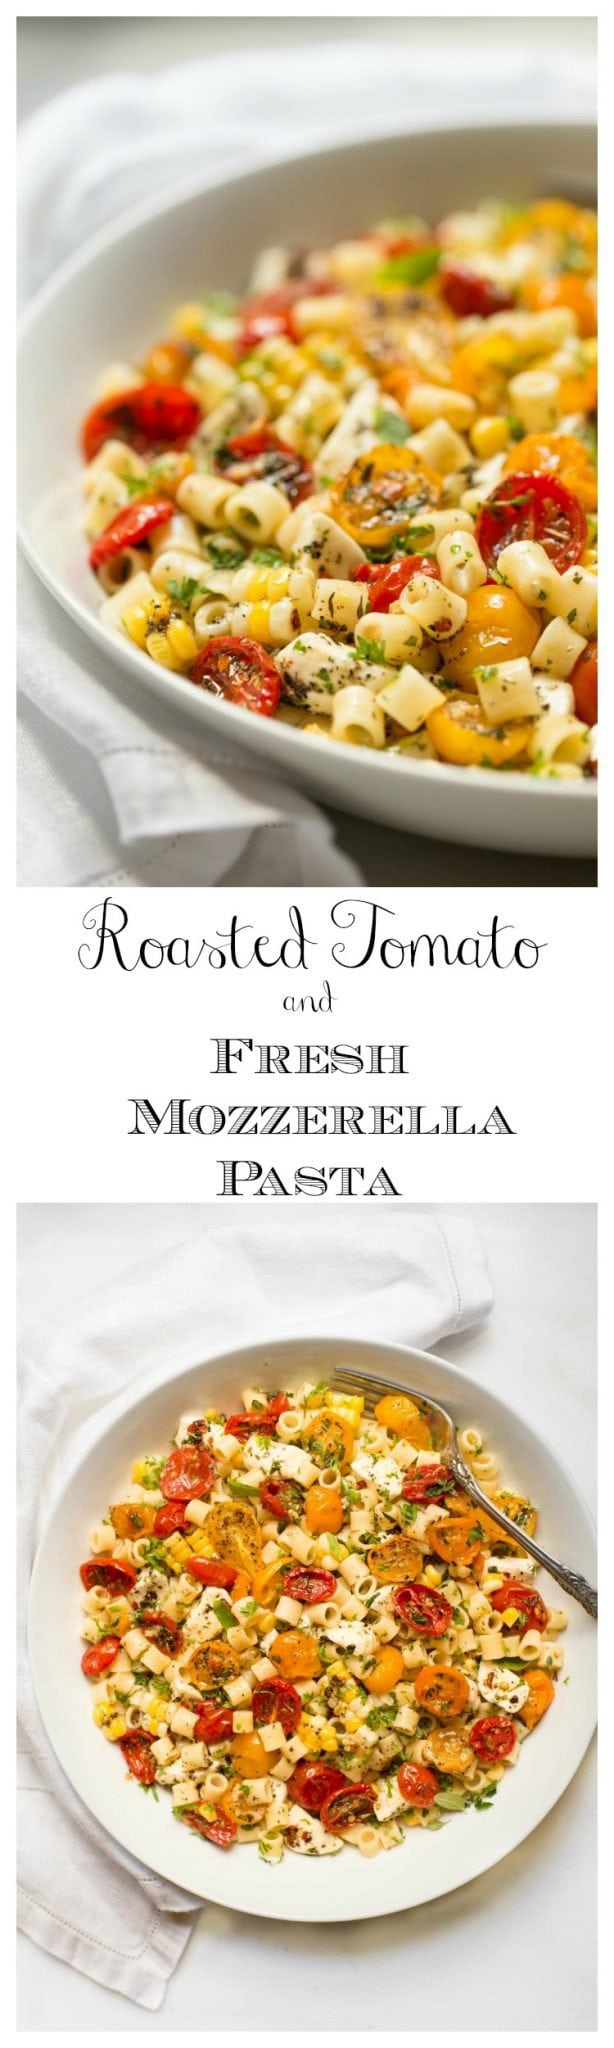 "Roasted Tomato and Fresh Mozzarella Pasta - if this delicious pasta could talk it would be shouting ""summer""!"